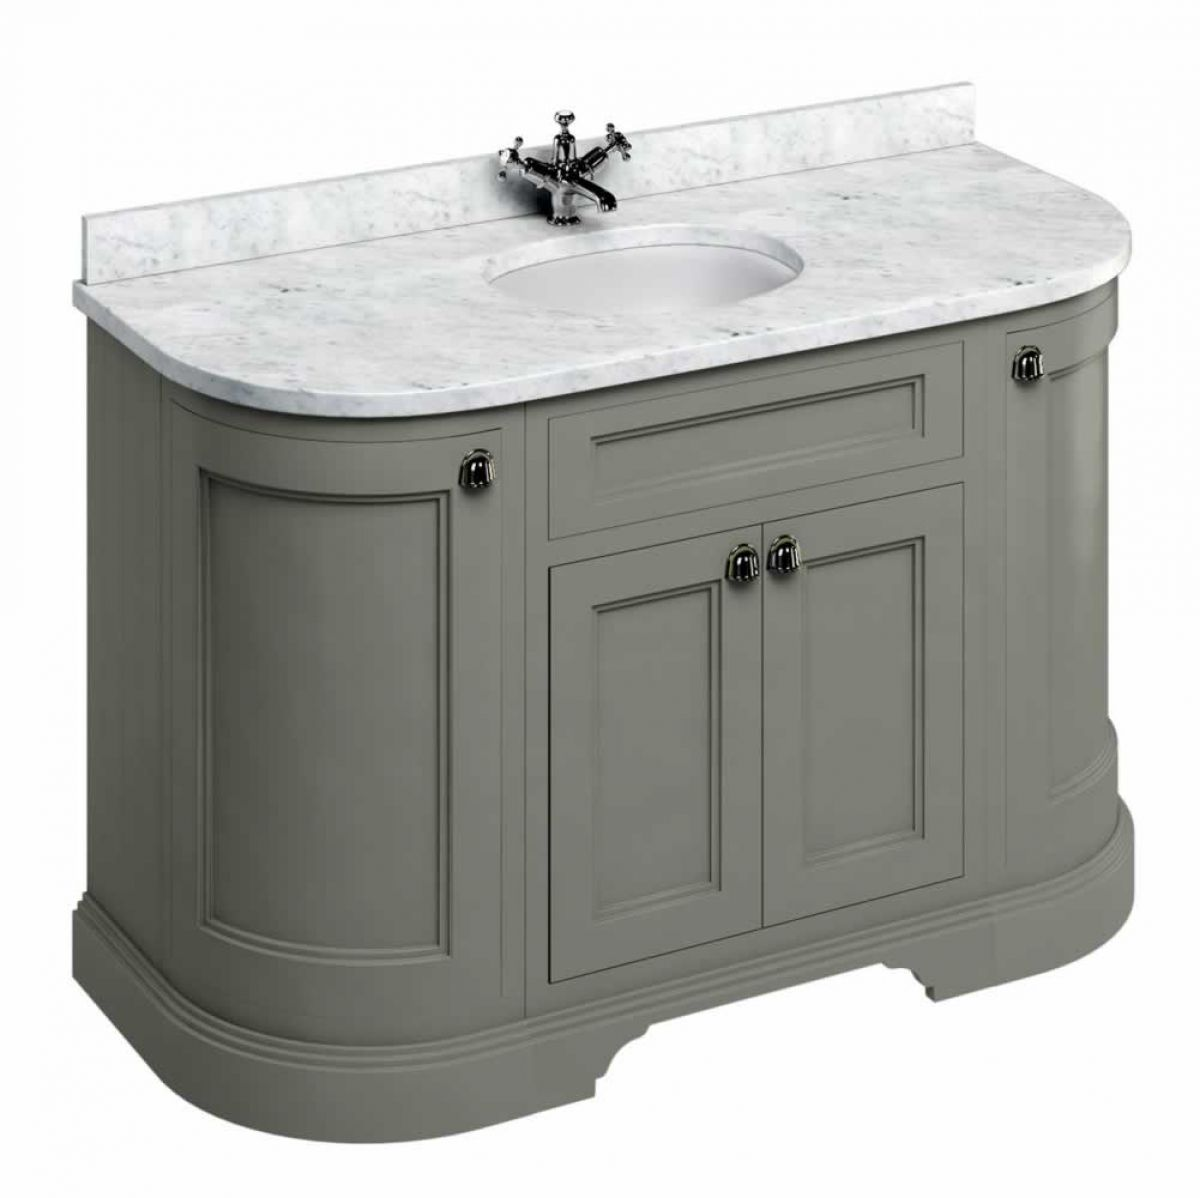 Best Free Standing Vanity Units Brands in UK